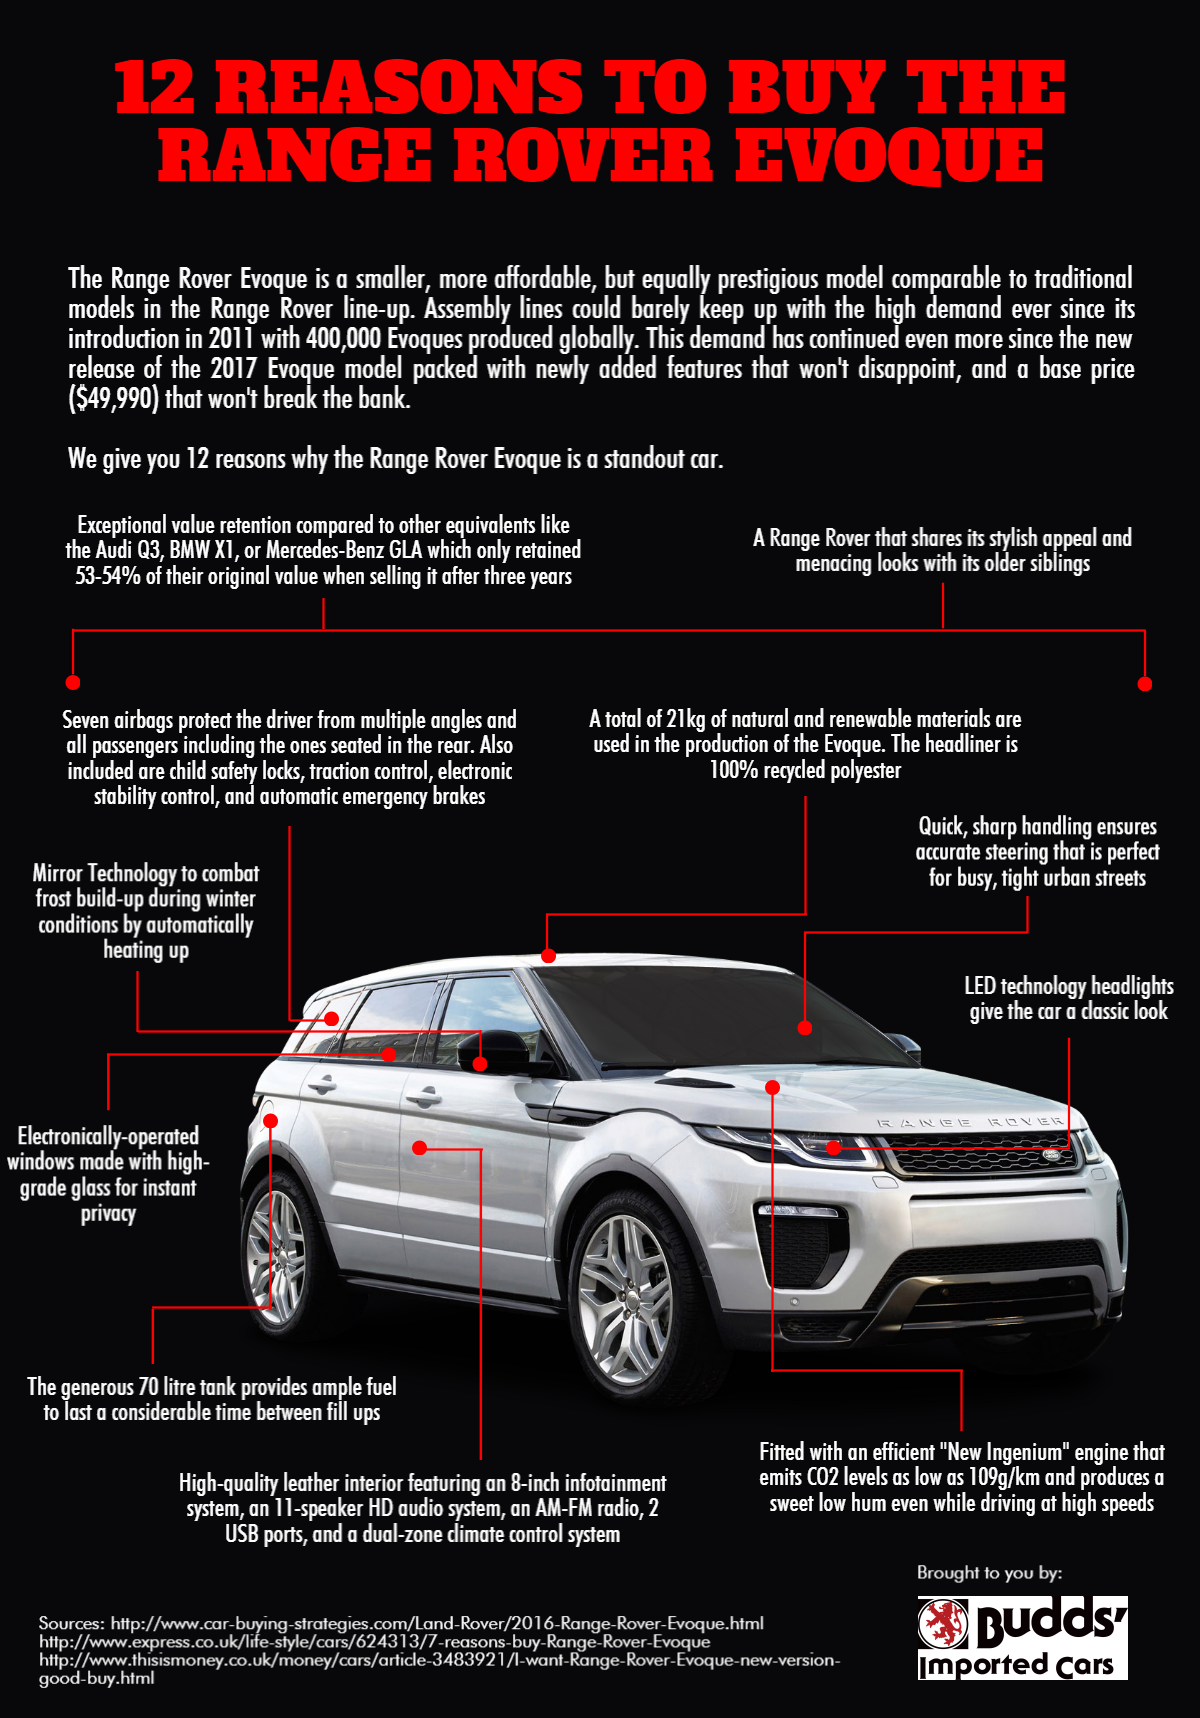 12_reasons_to_buy_a_range_rover_evoque-infographic-galleryr